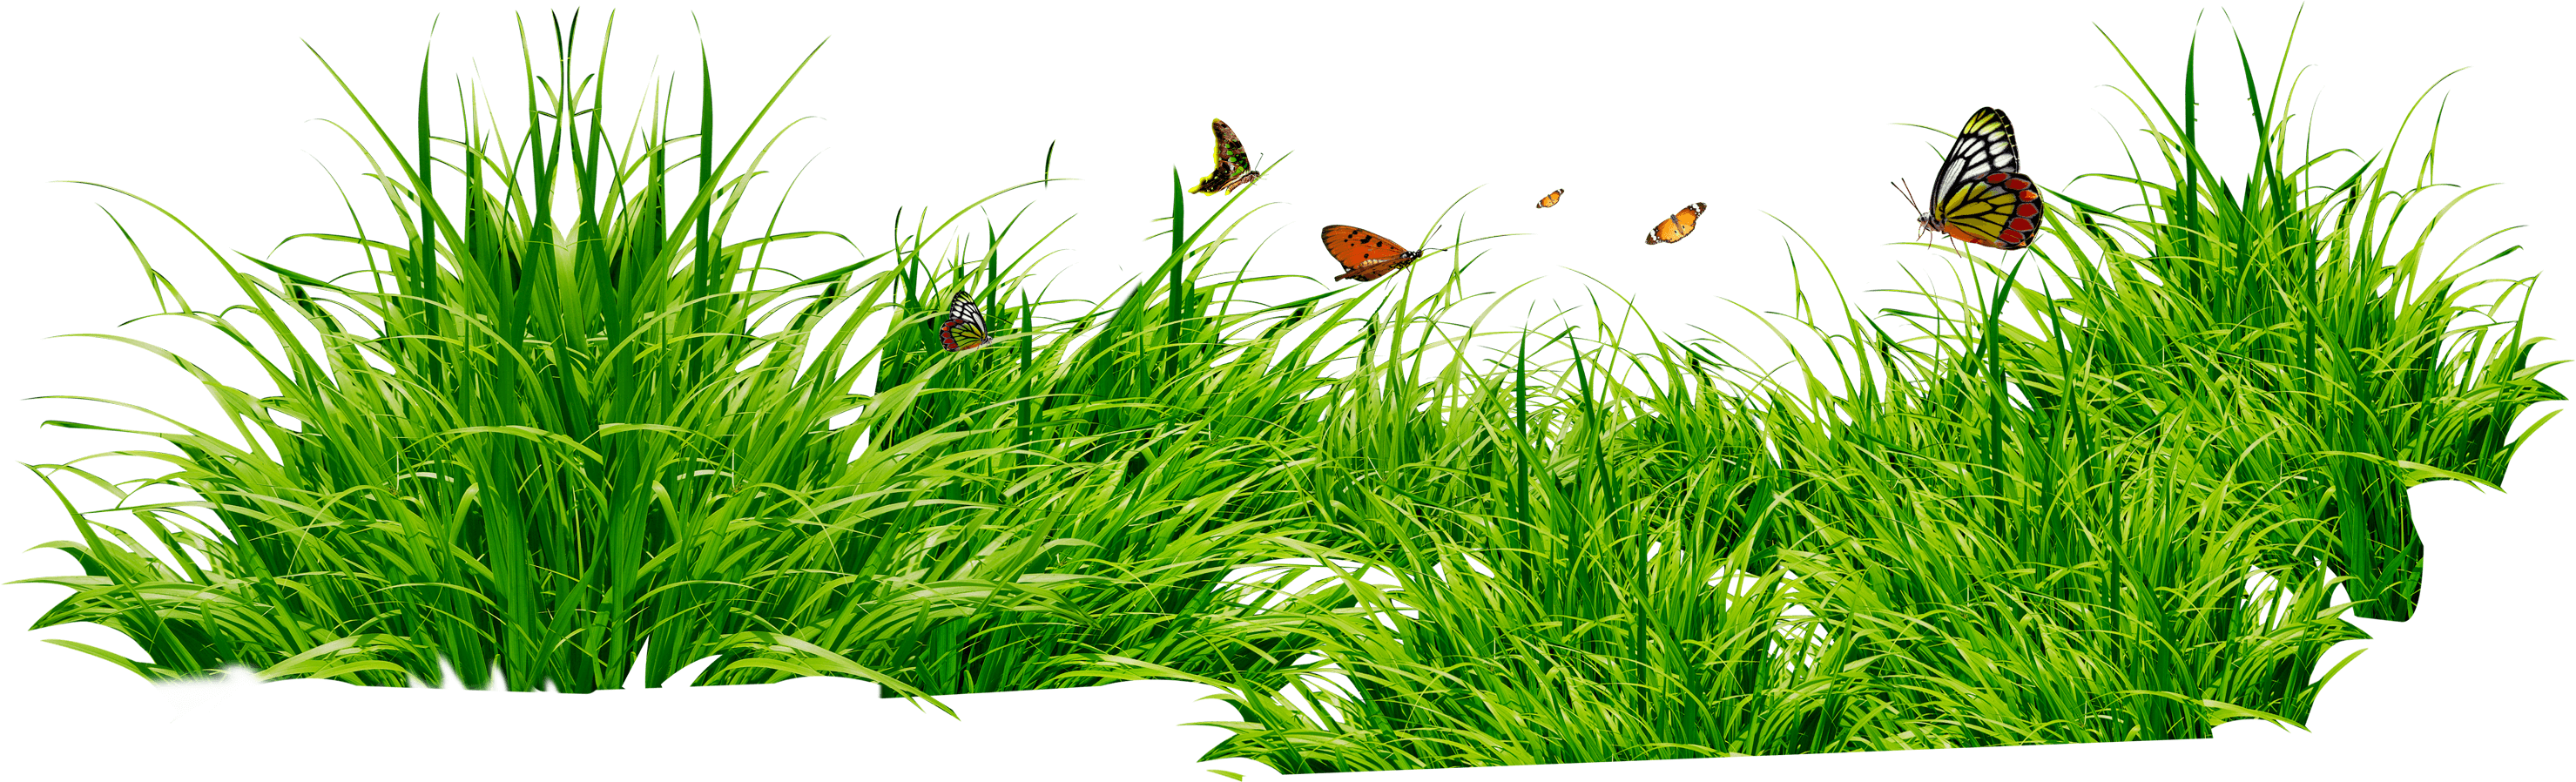 Clipart grass buffalo grass. Patch with insects png